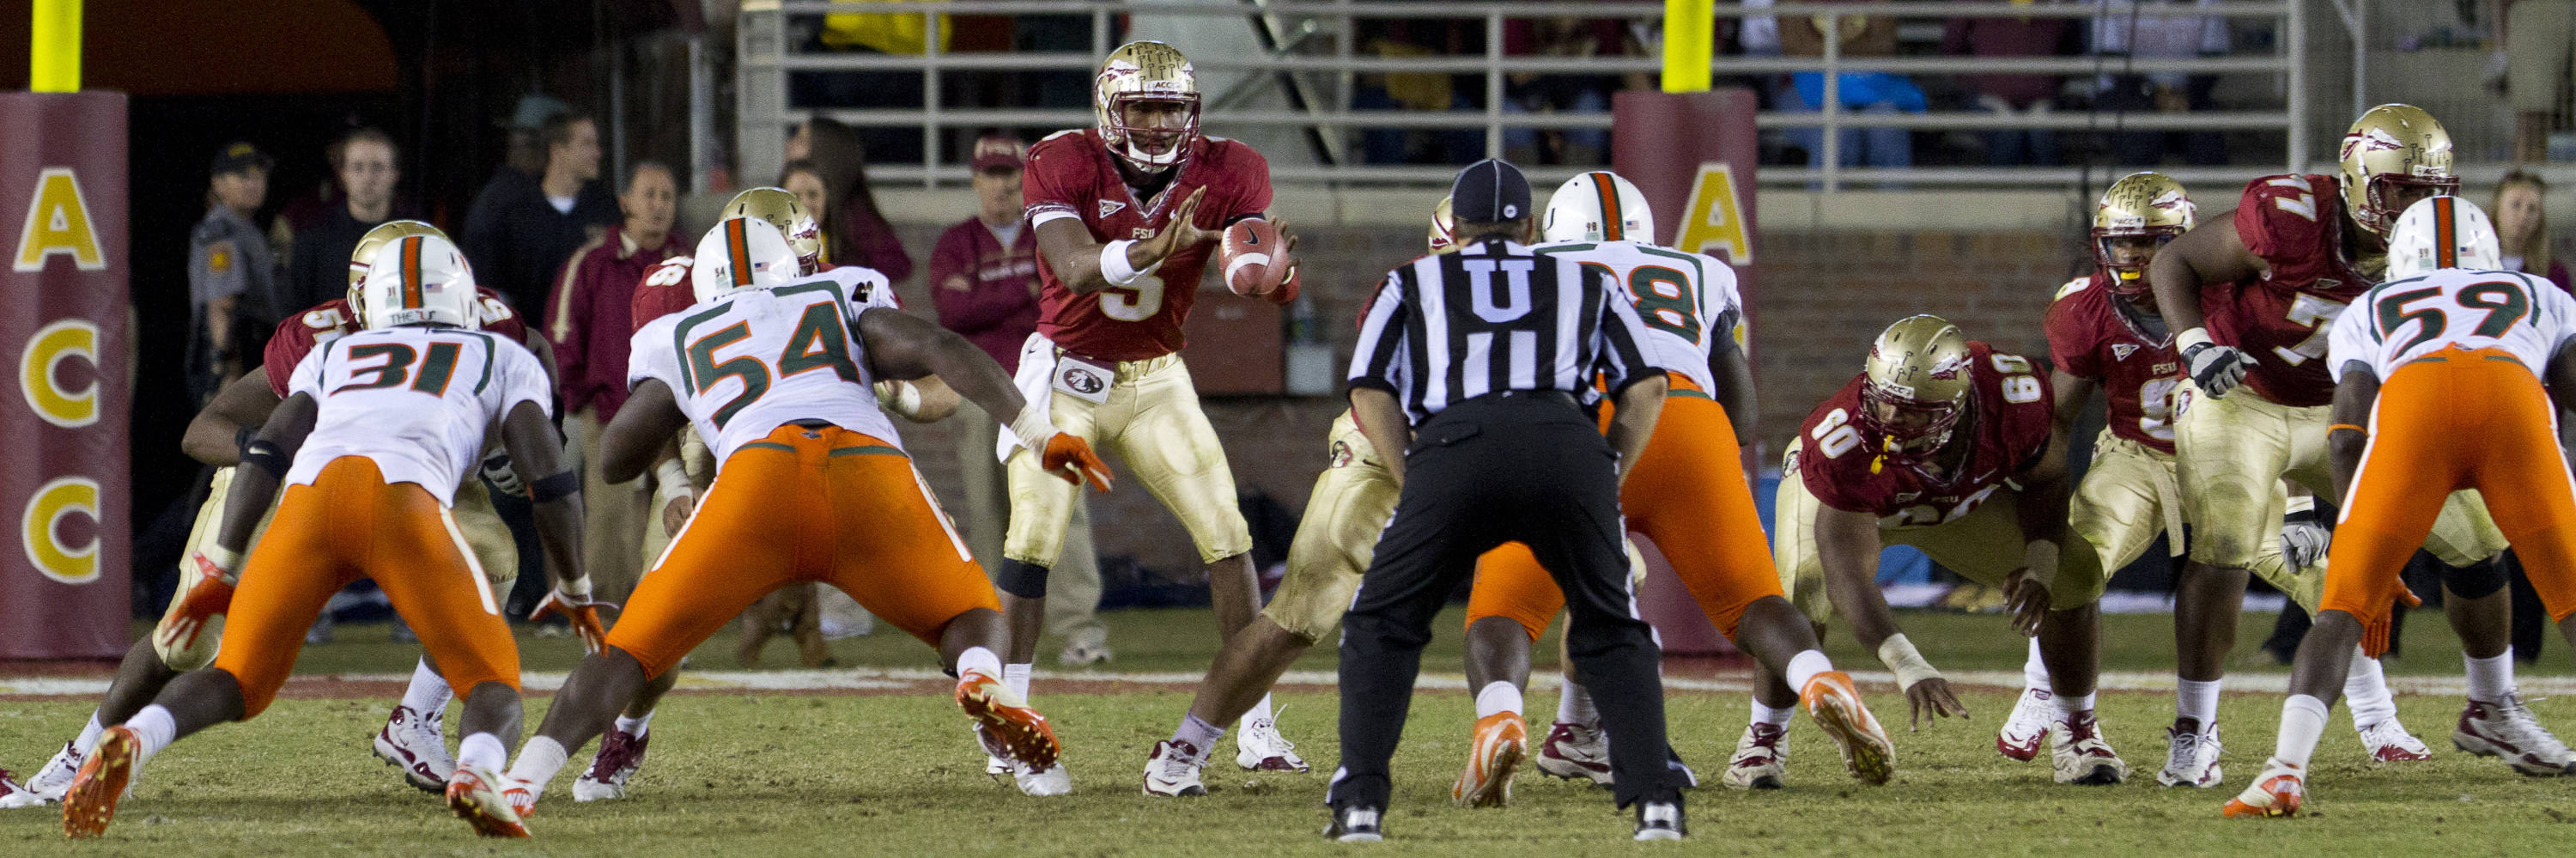 EJ Manuel (3) receives the snap during the football game against Miami on November 12, 2011.